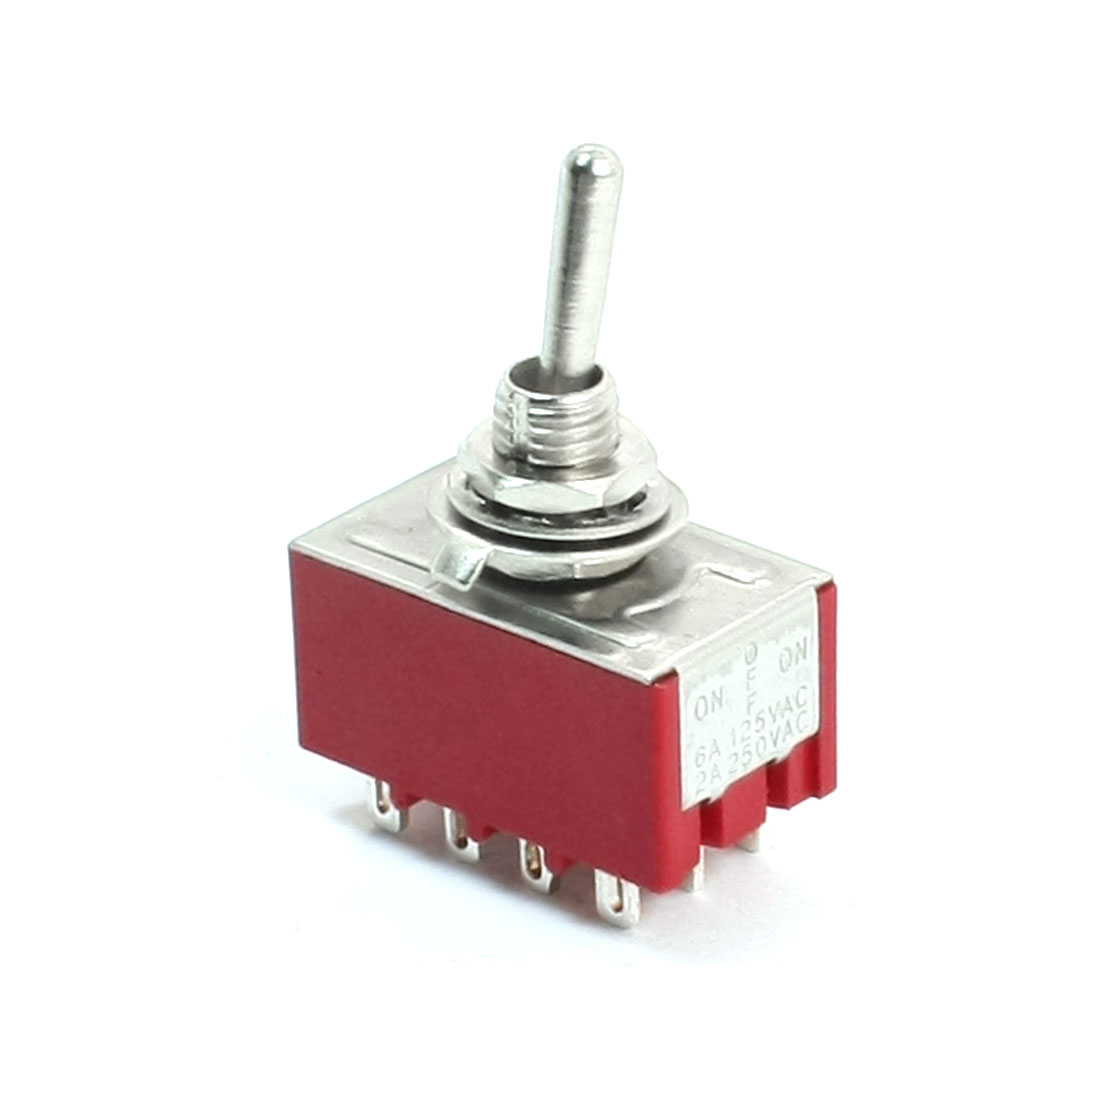 6mm Panel Mount 4PDT ON/OFF/ON 3 Position Power Control Toggle Switch AC 250V 2A